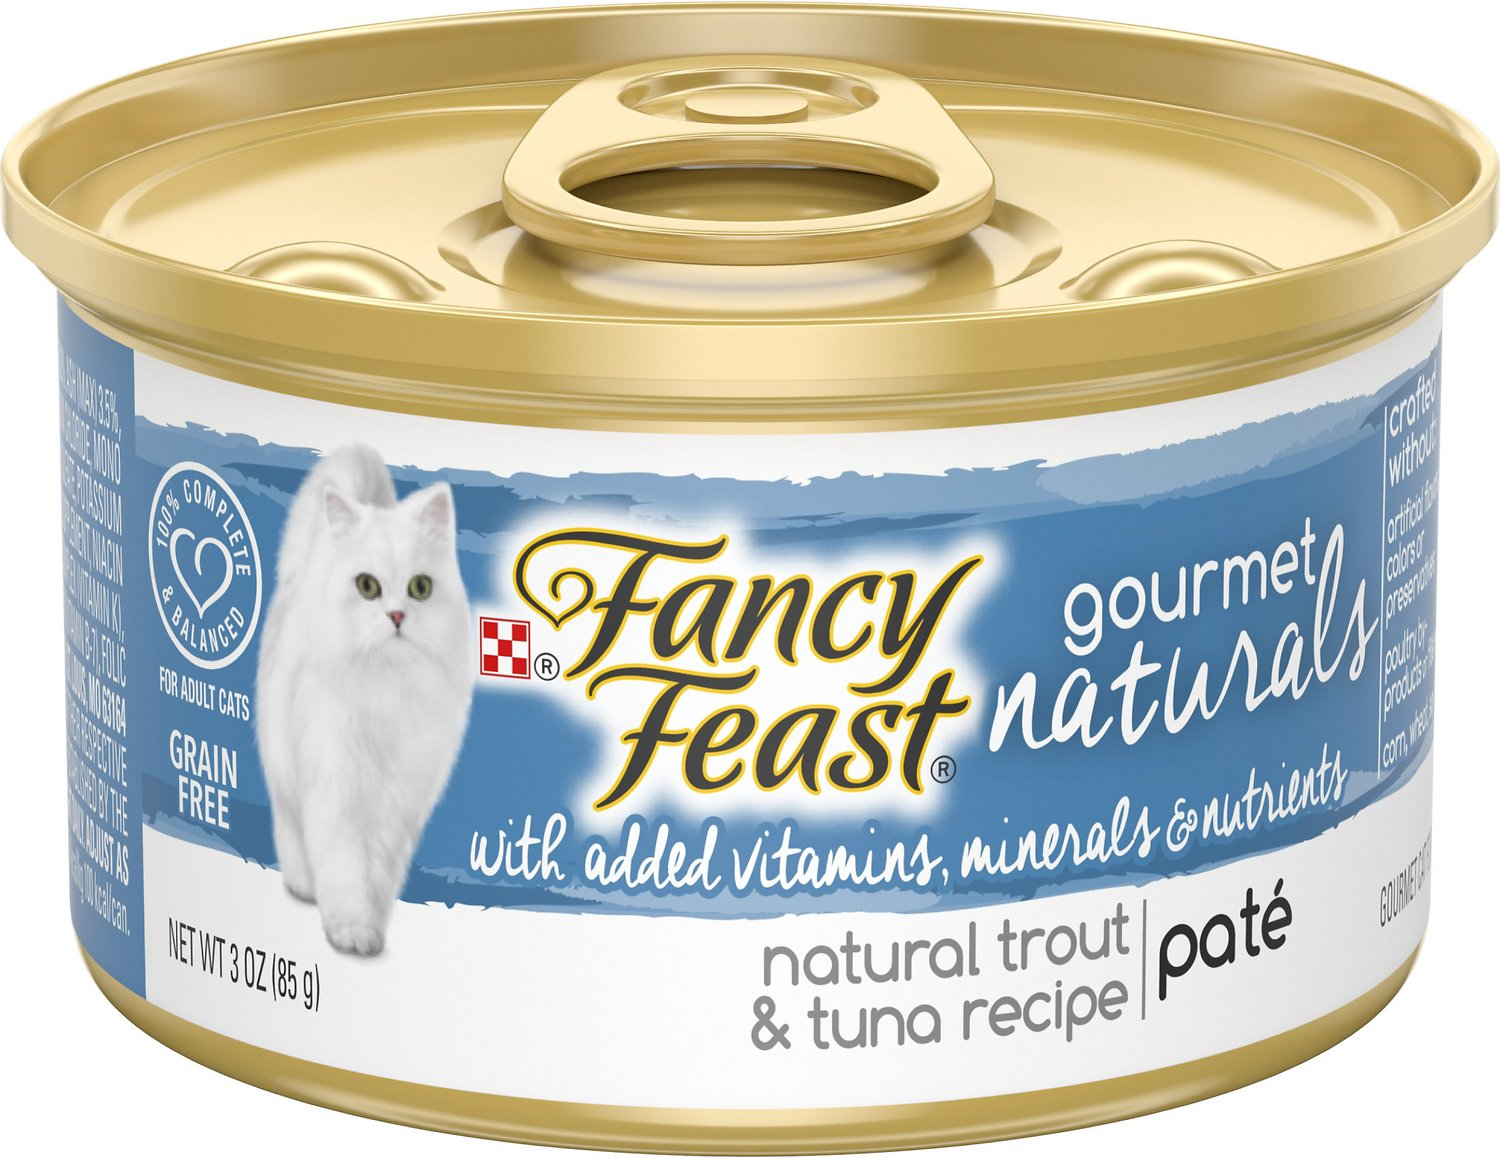 Fancy Feast Gourmet Naturals Trout & Tuna Recipe Pate Canned Cat Food Image